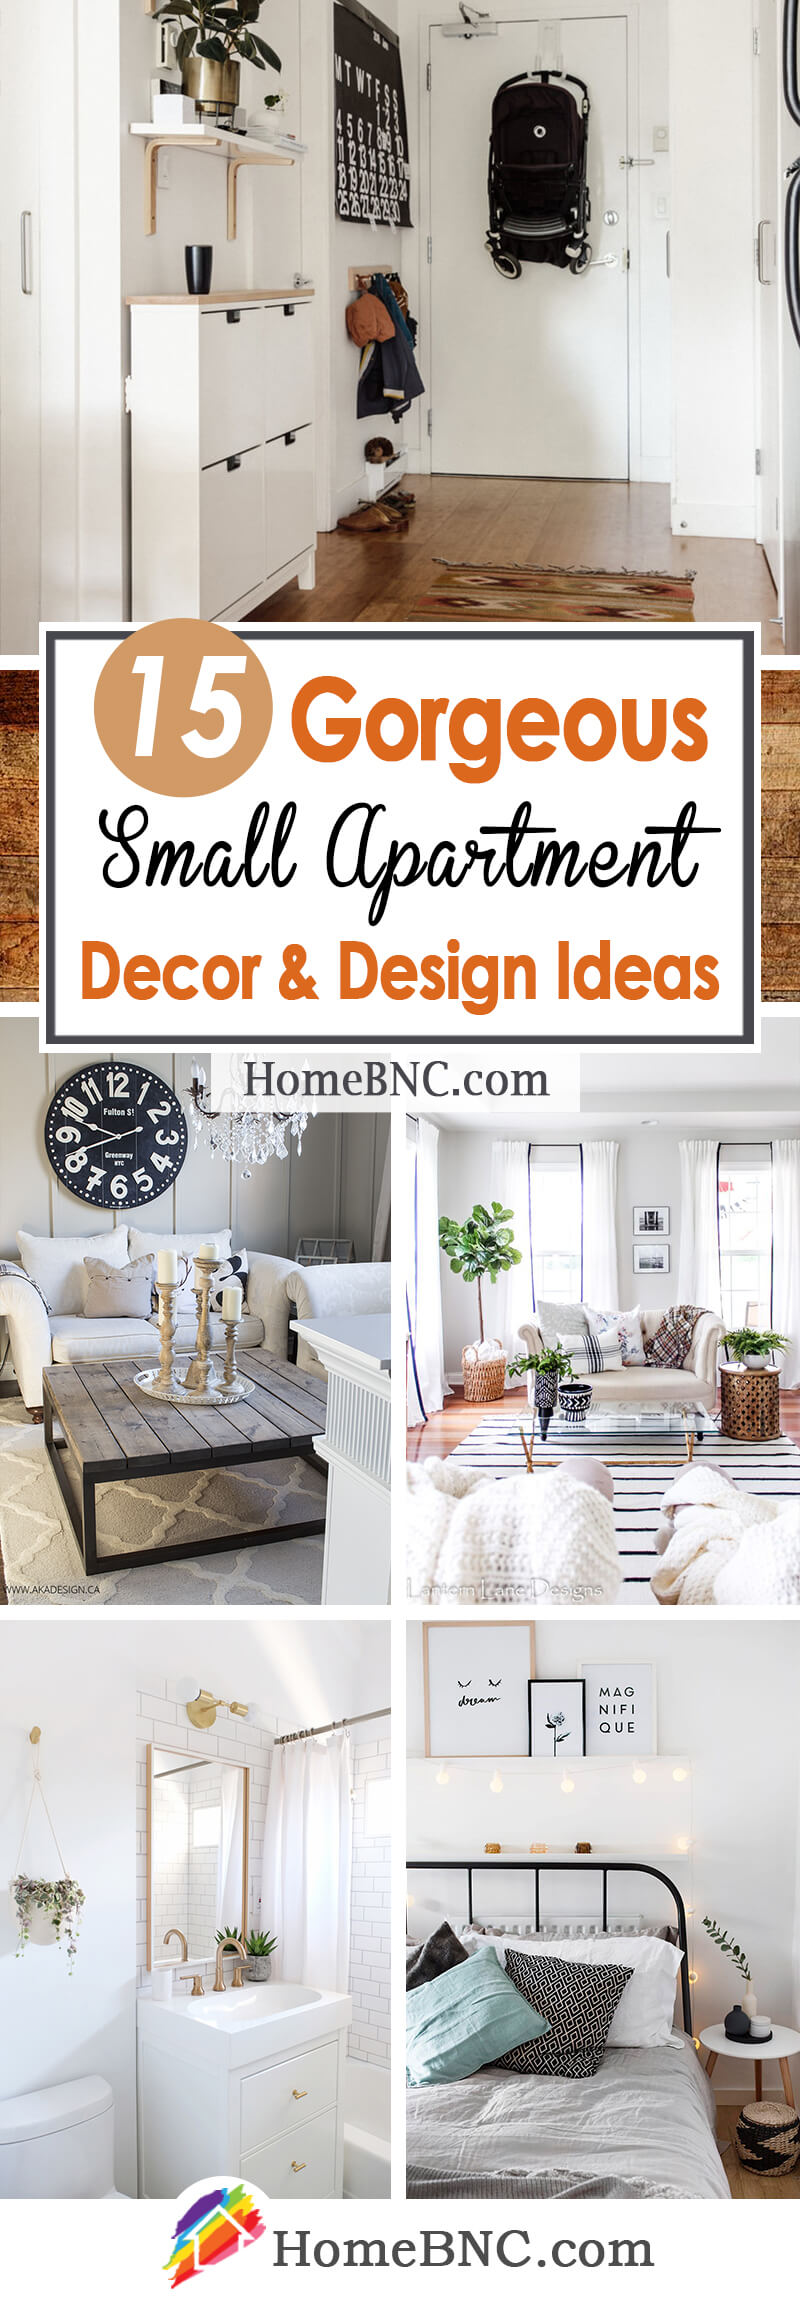 15 Best Small Apartment Decor and Design Ideas for 2019